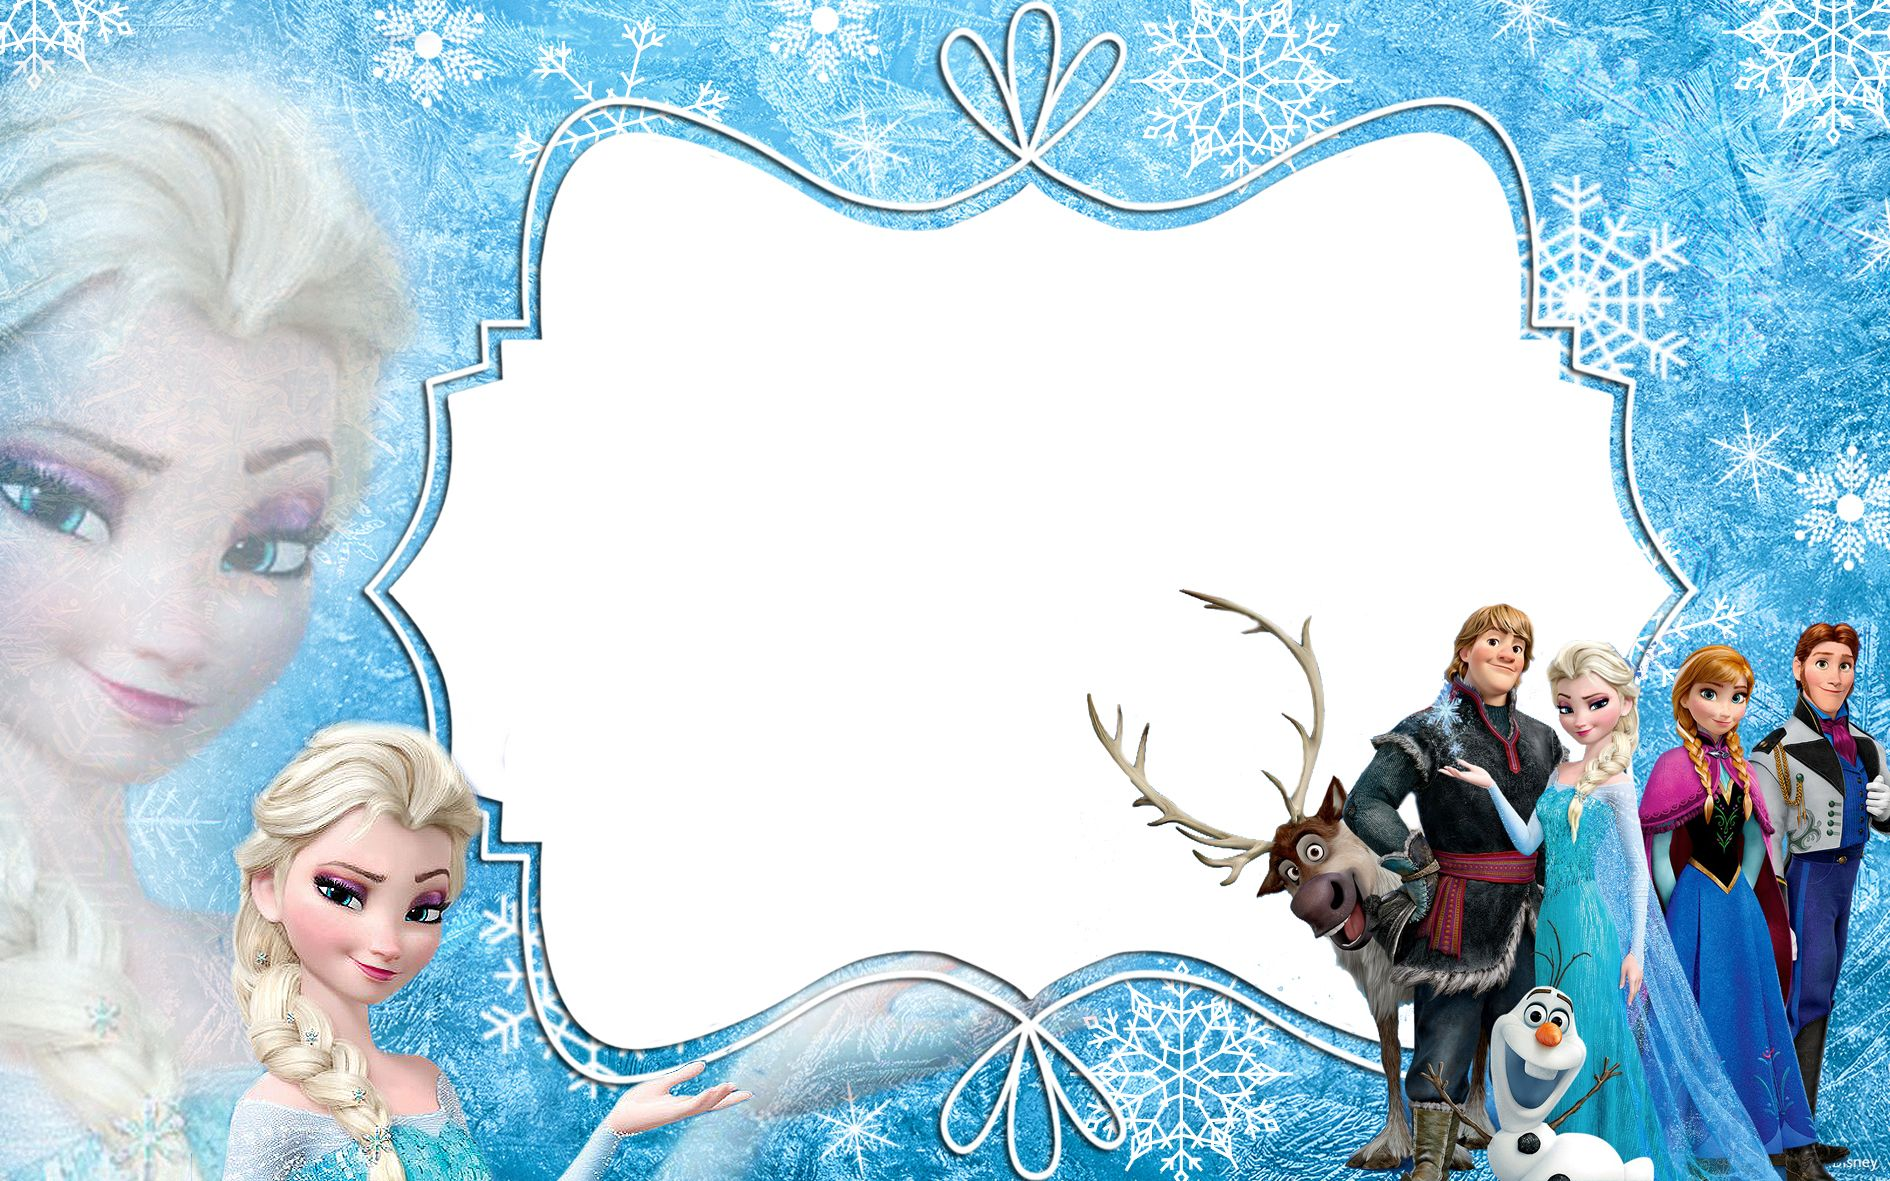 Frozen Photos Download Frozen Wallpapers Download Free